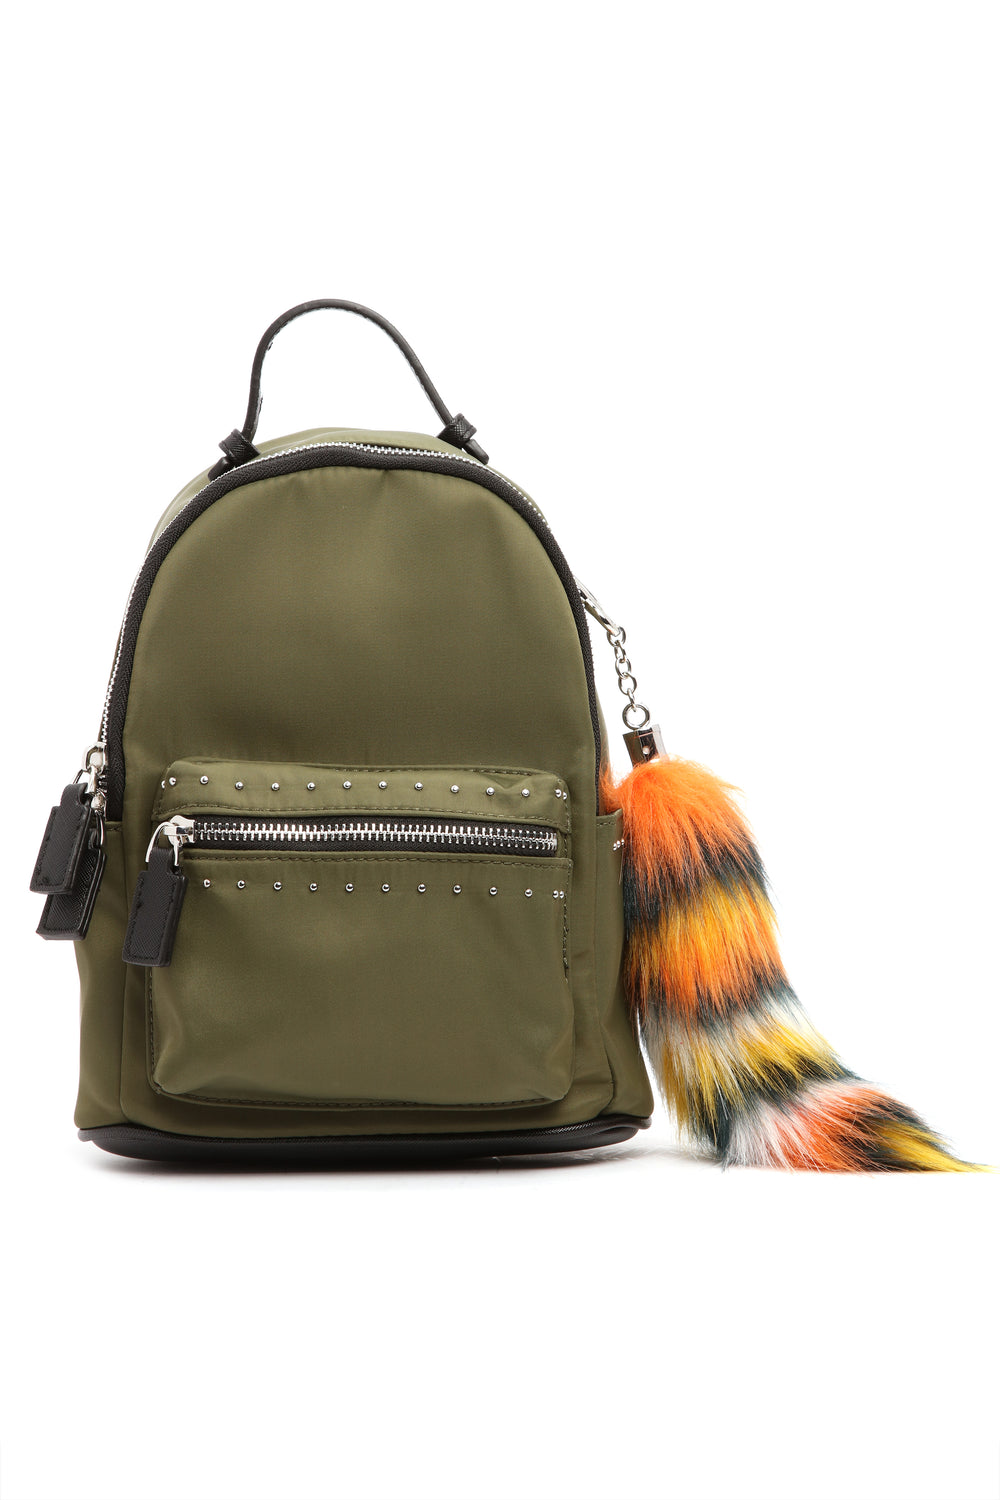 It's For You Backpack - Olive